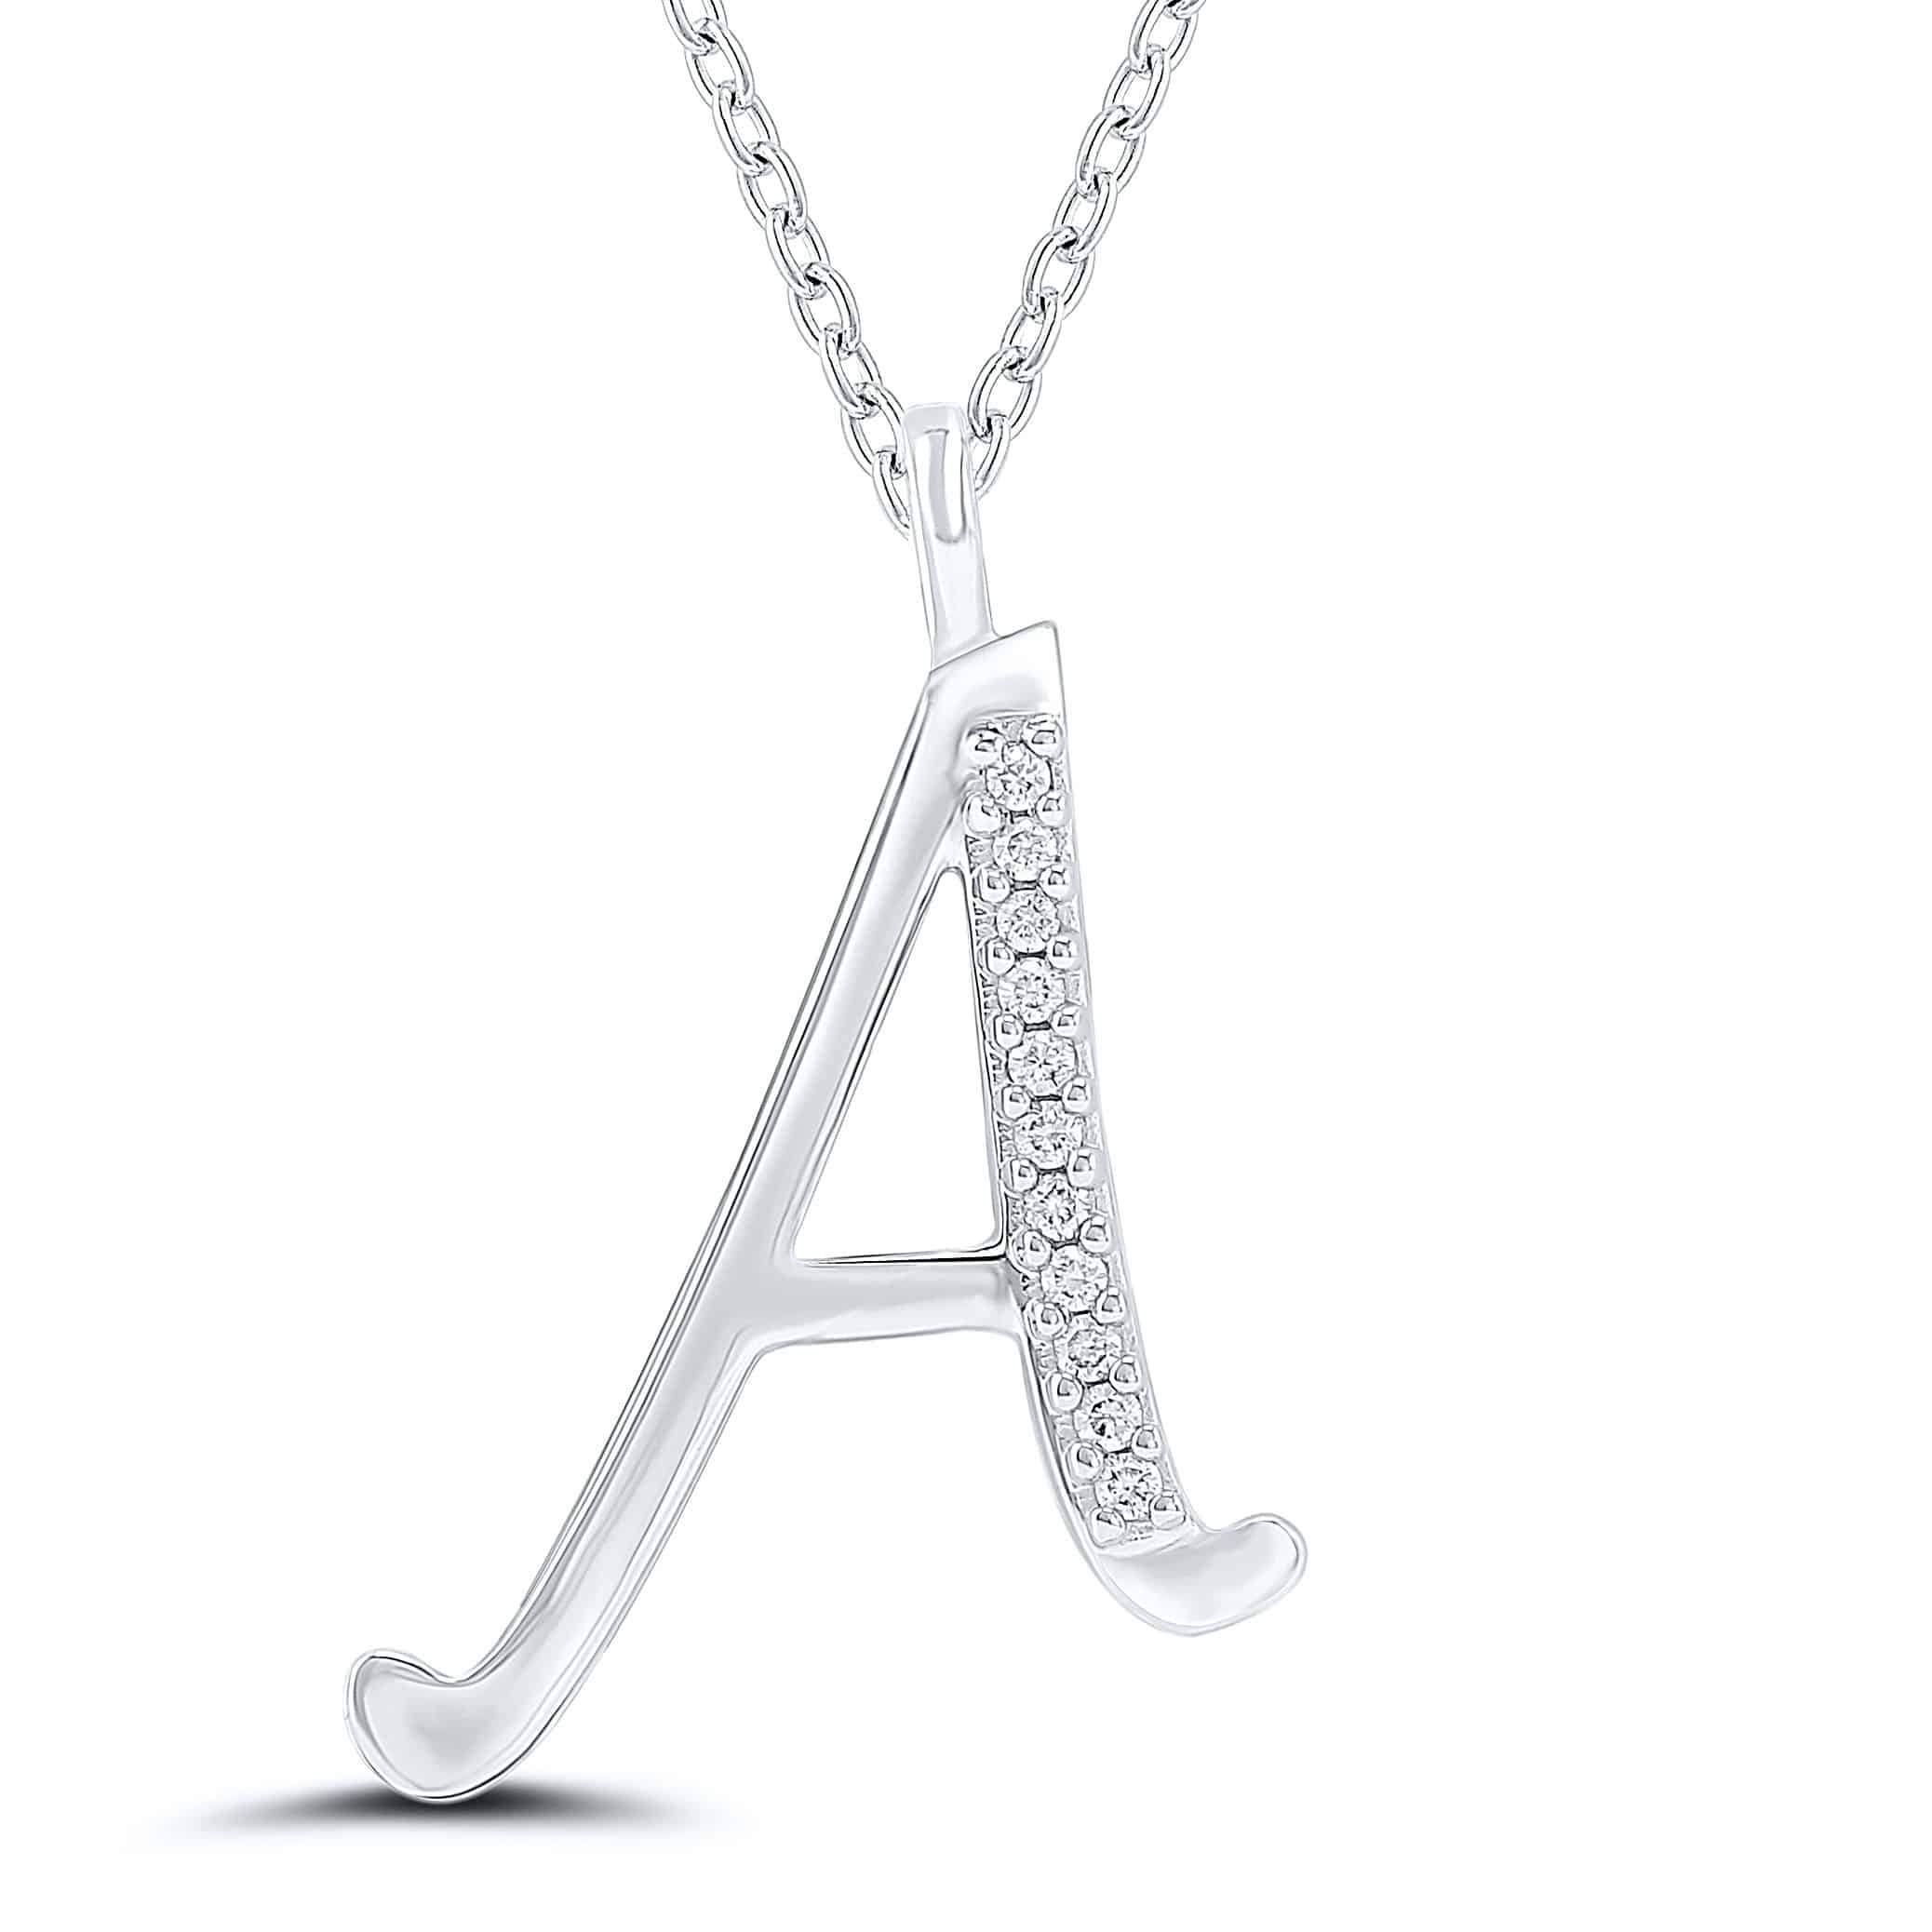 Andre Michael reports strong demand for its Alphabet Diamond Pendants during lockdown